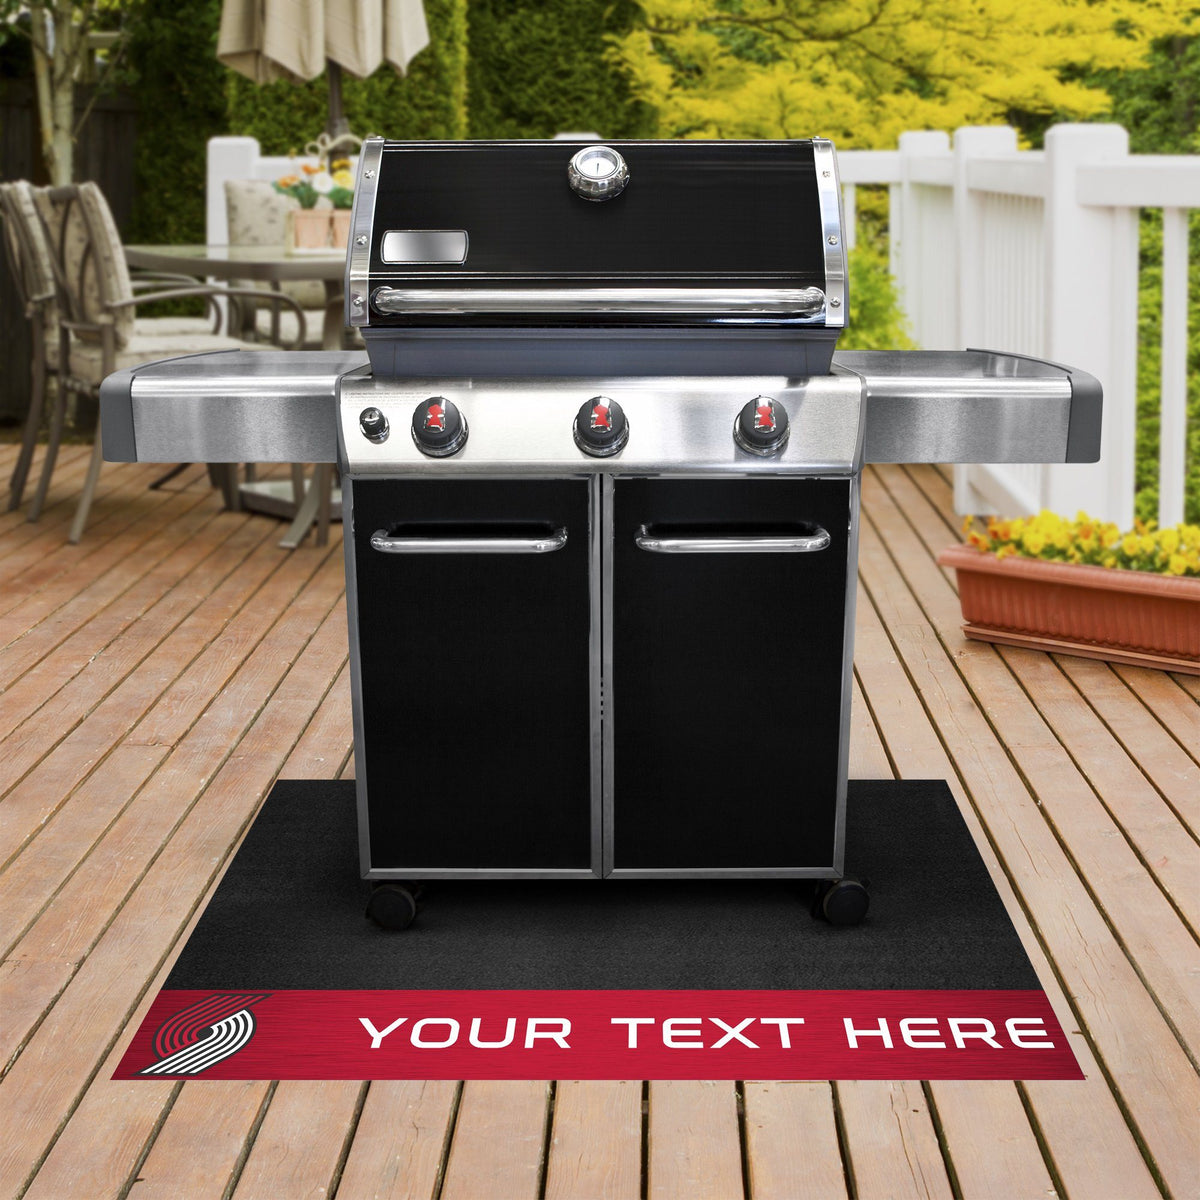 NBA Personalized Grill Mat Personalized Grill Mat Fan Mats Portland Trail Blazers